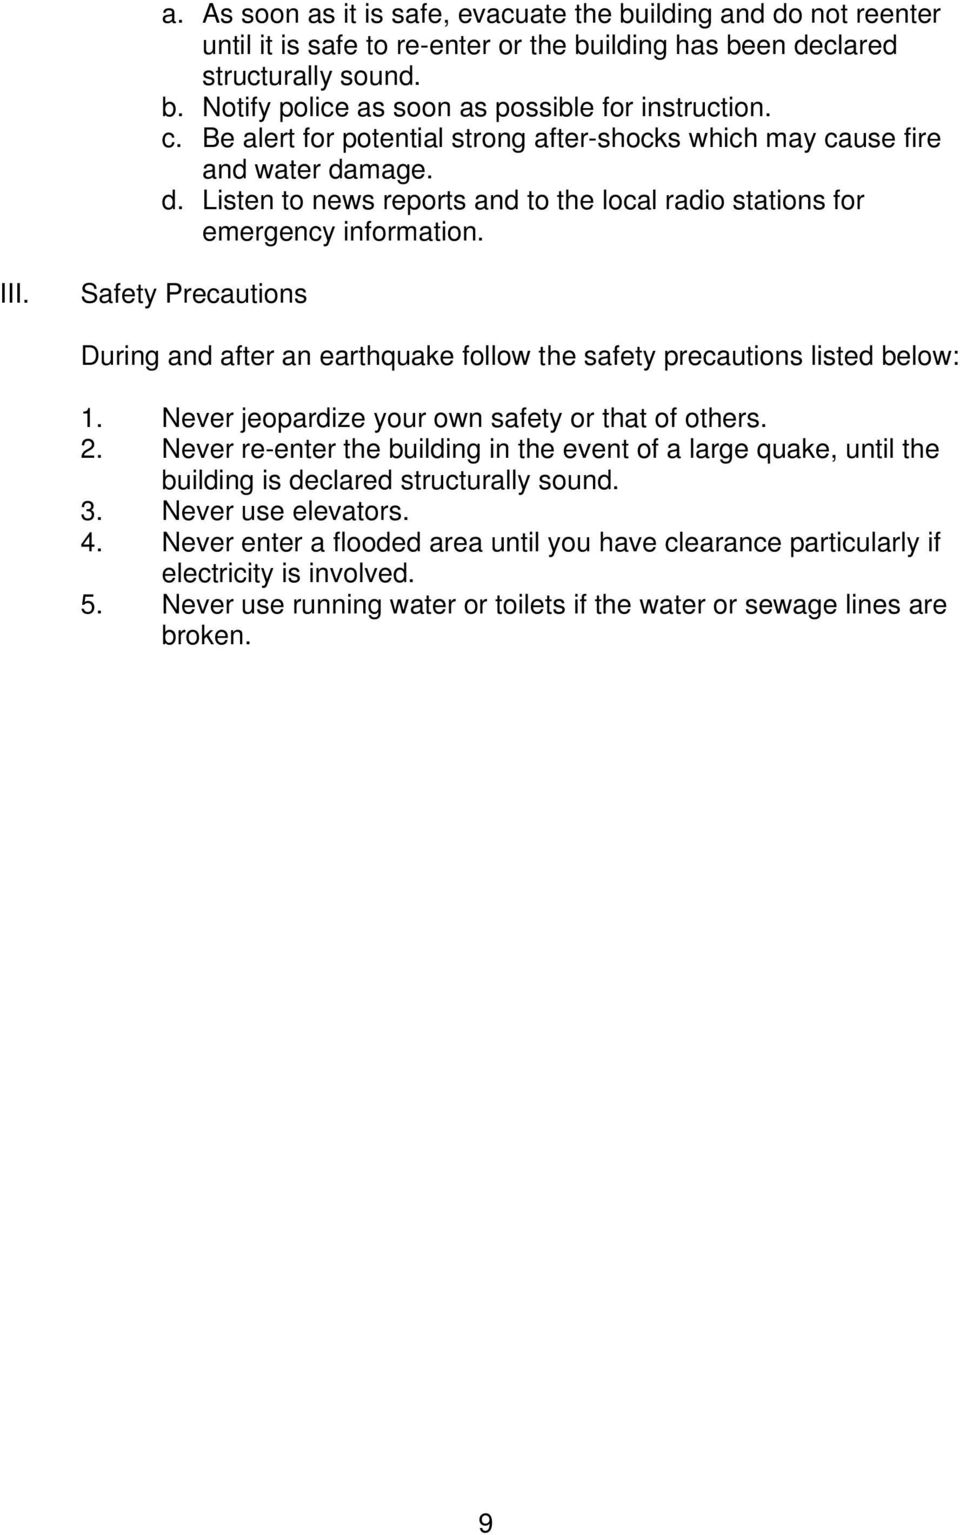 Safety Precautions During and after an earthquake follow the safety precautions listed below: 1. Never jeopardize your own safety or that of others. 2.